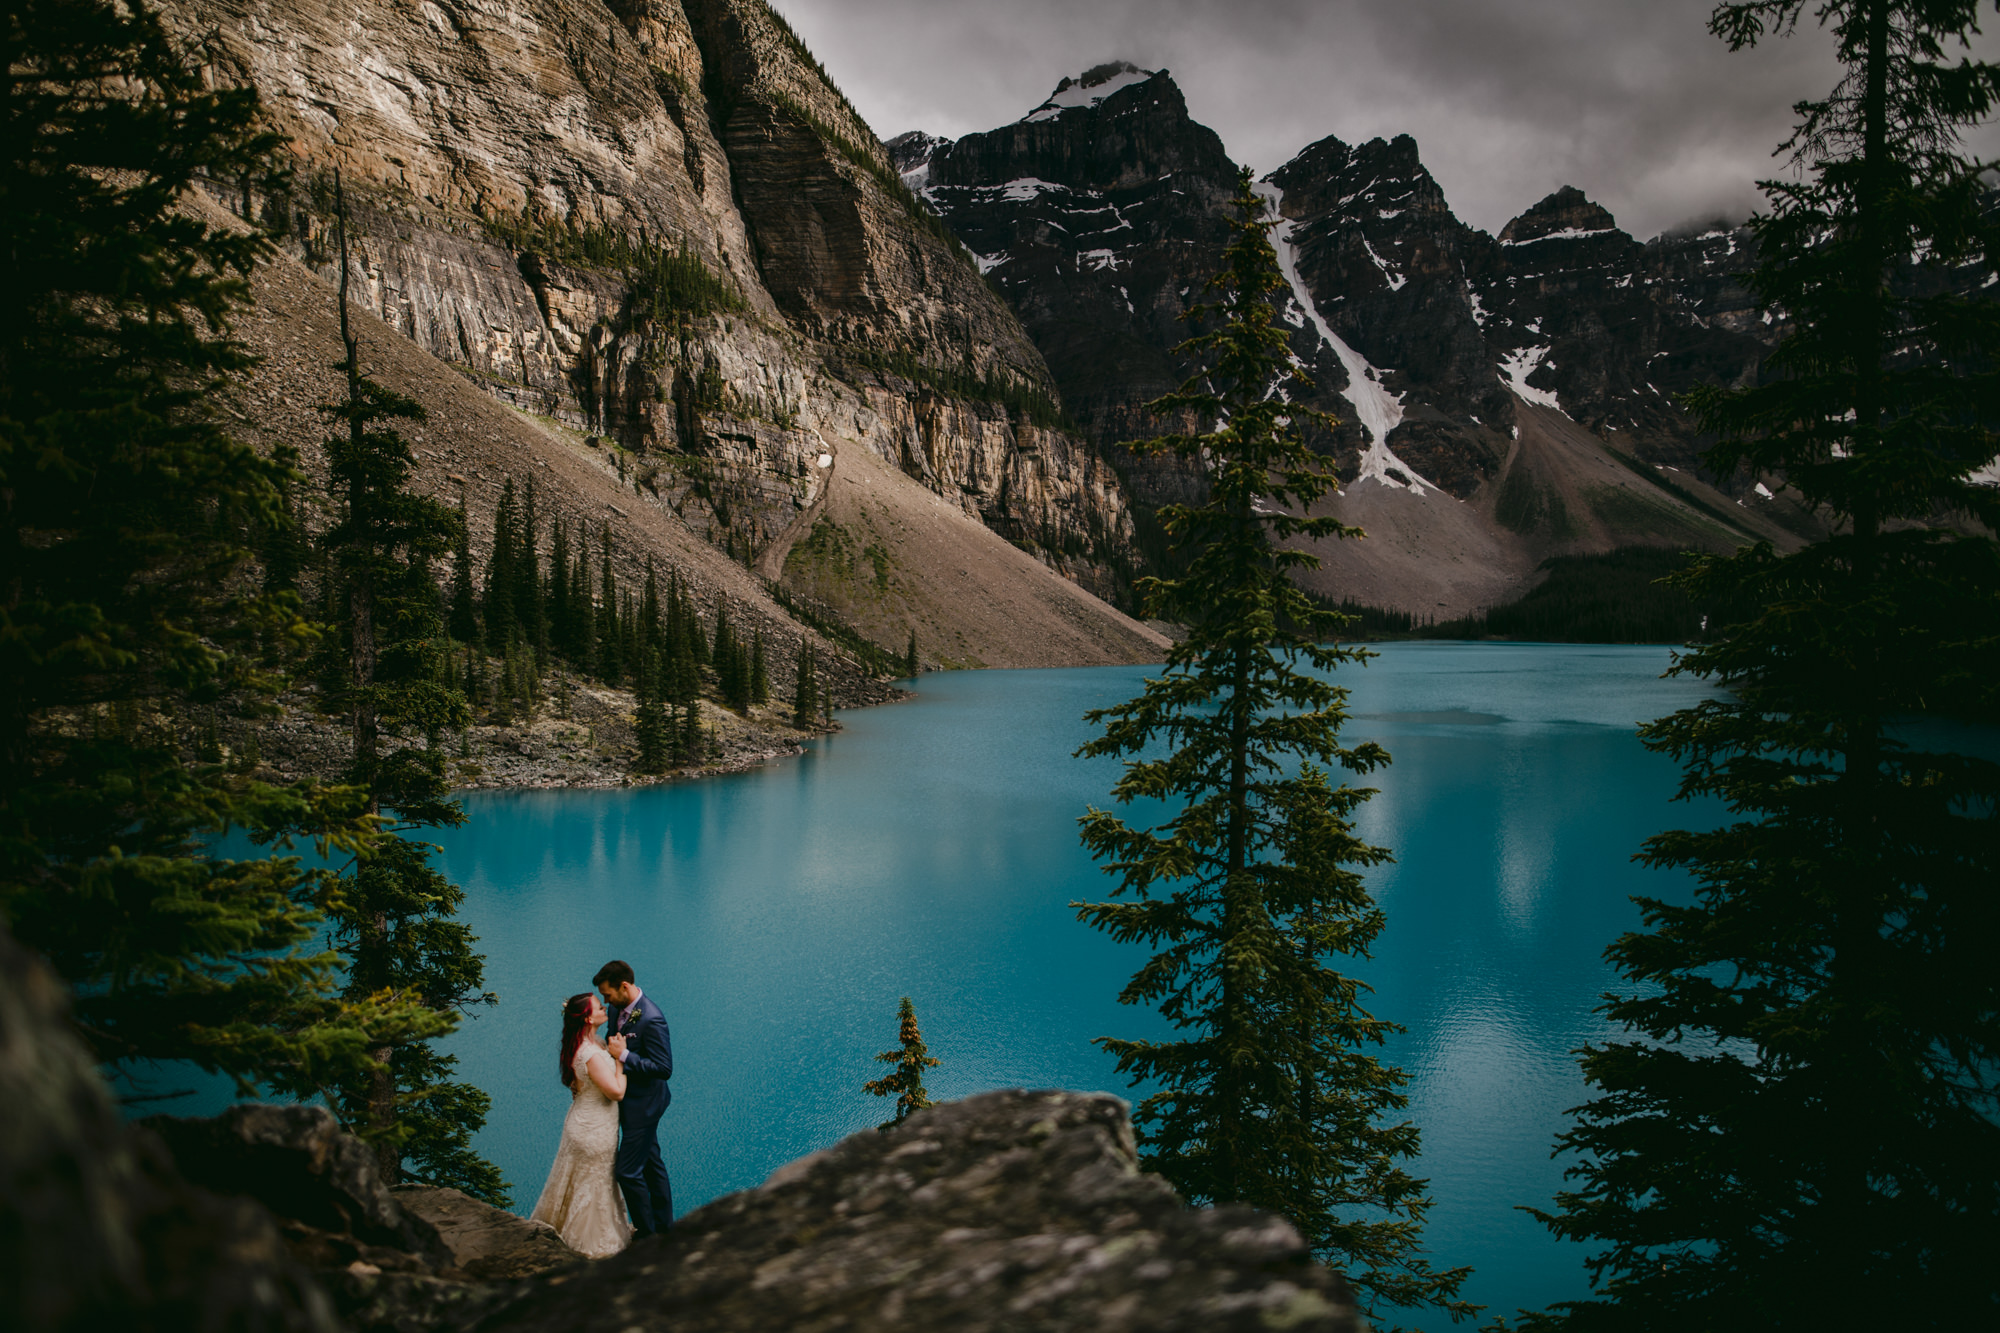 Elopement at Lake Moraine, Banff National Park, Alberta, Canada - photo by Two Mann Studios